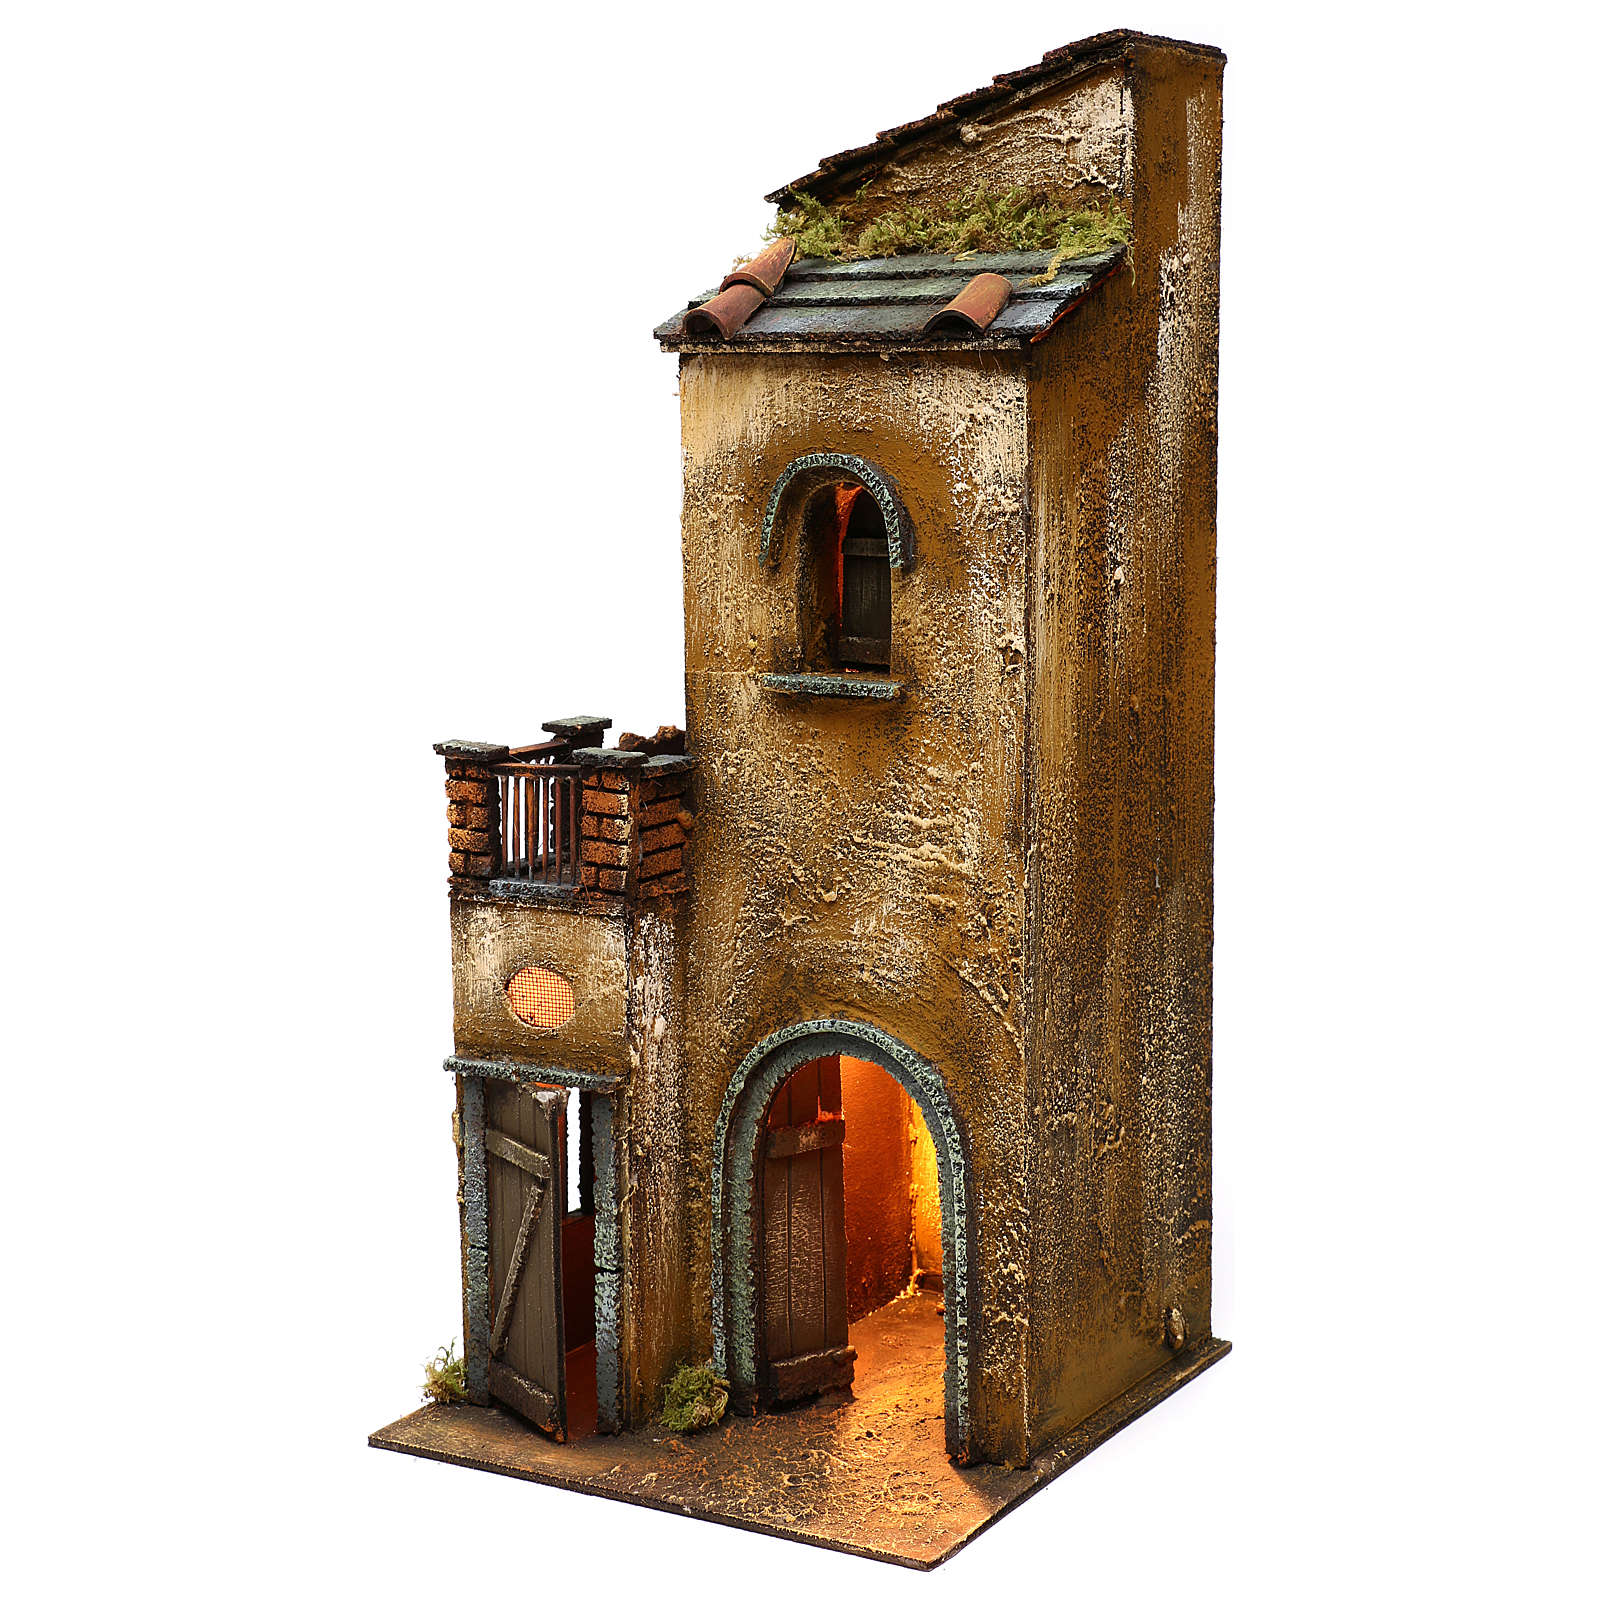 Neapolitan Nativity scene setting, house with lights on rectangular base 50x25x25 cm 4